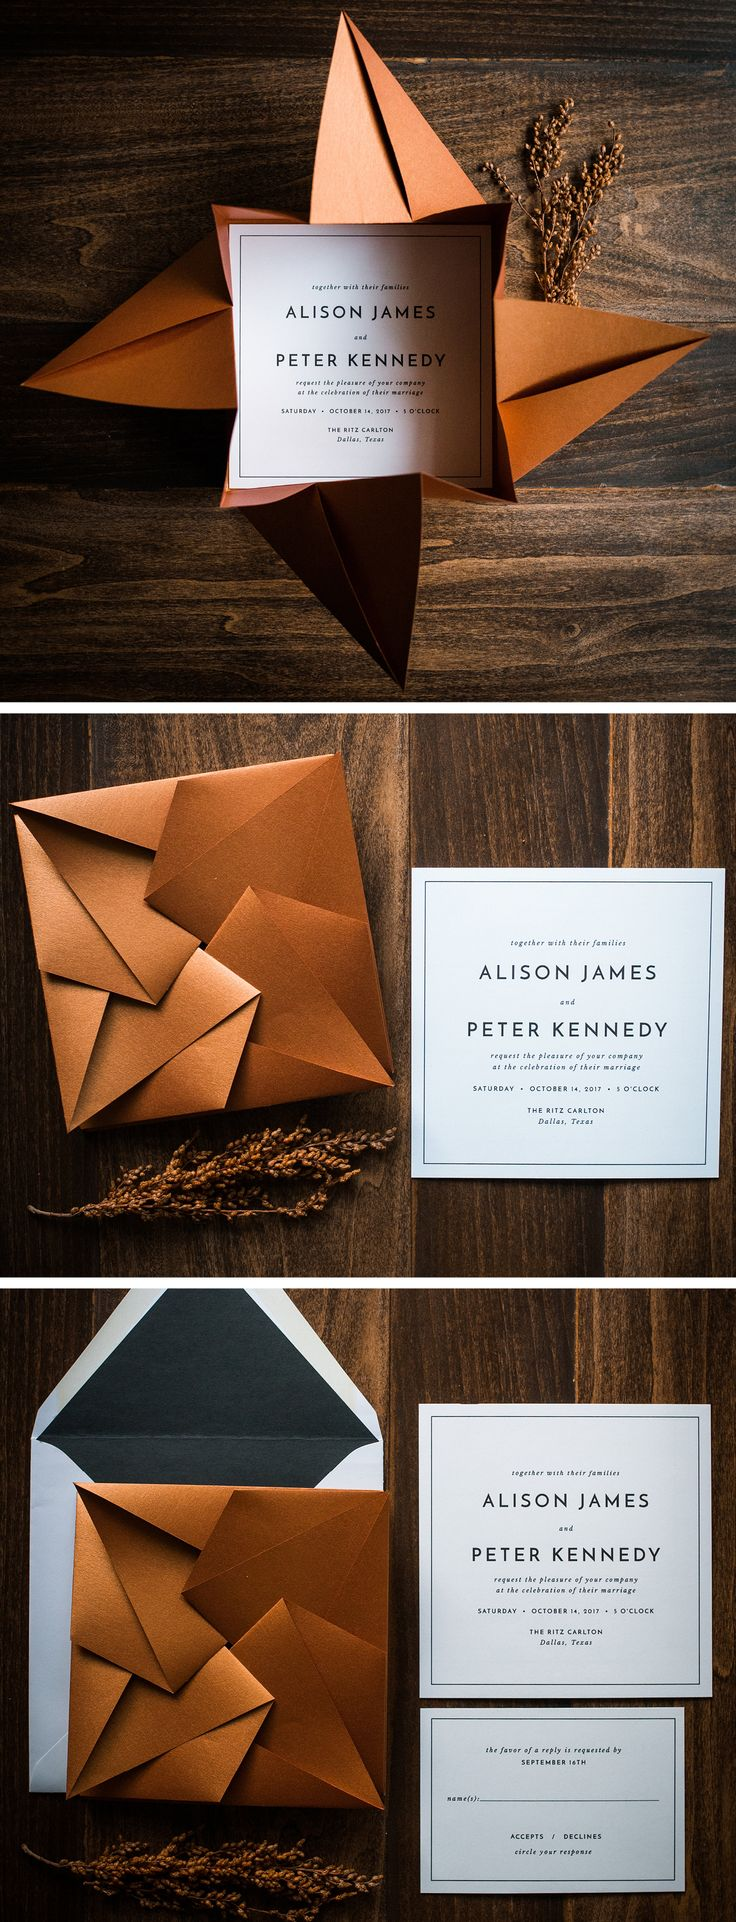 wedding invitation printing wedding invitations printing Unique Origami Wedding Invitation by Penn Paperie shown in shimmer copper and black color